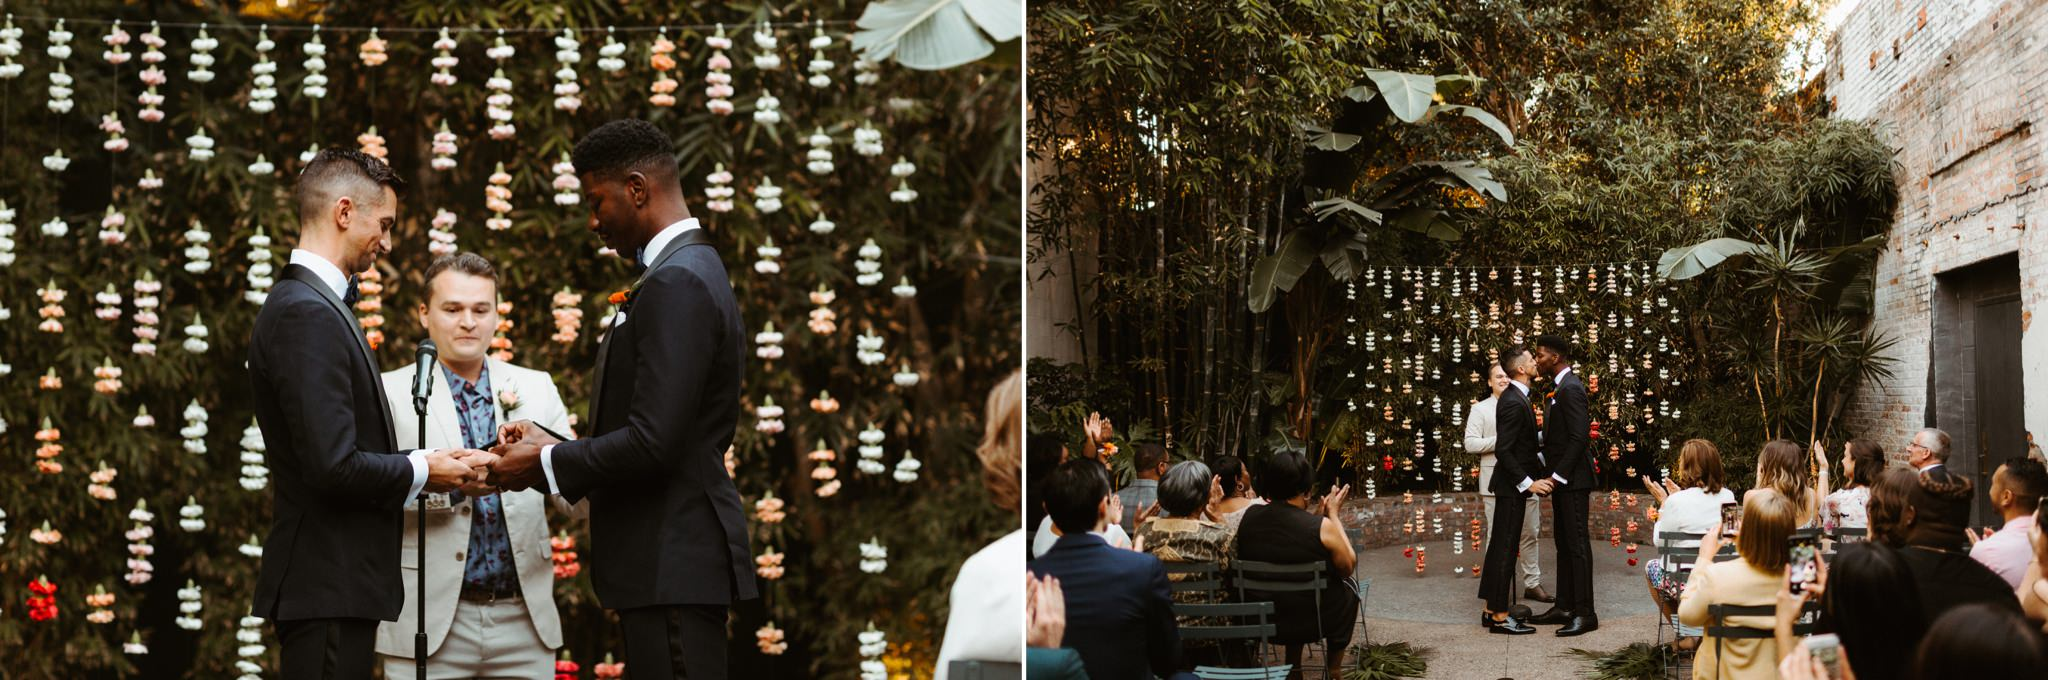 dtla wedding photographer 087